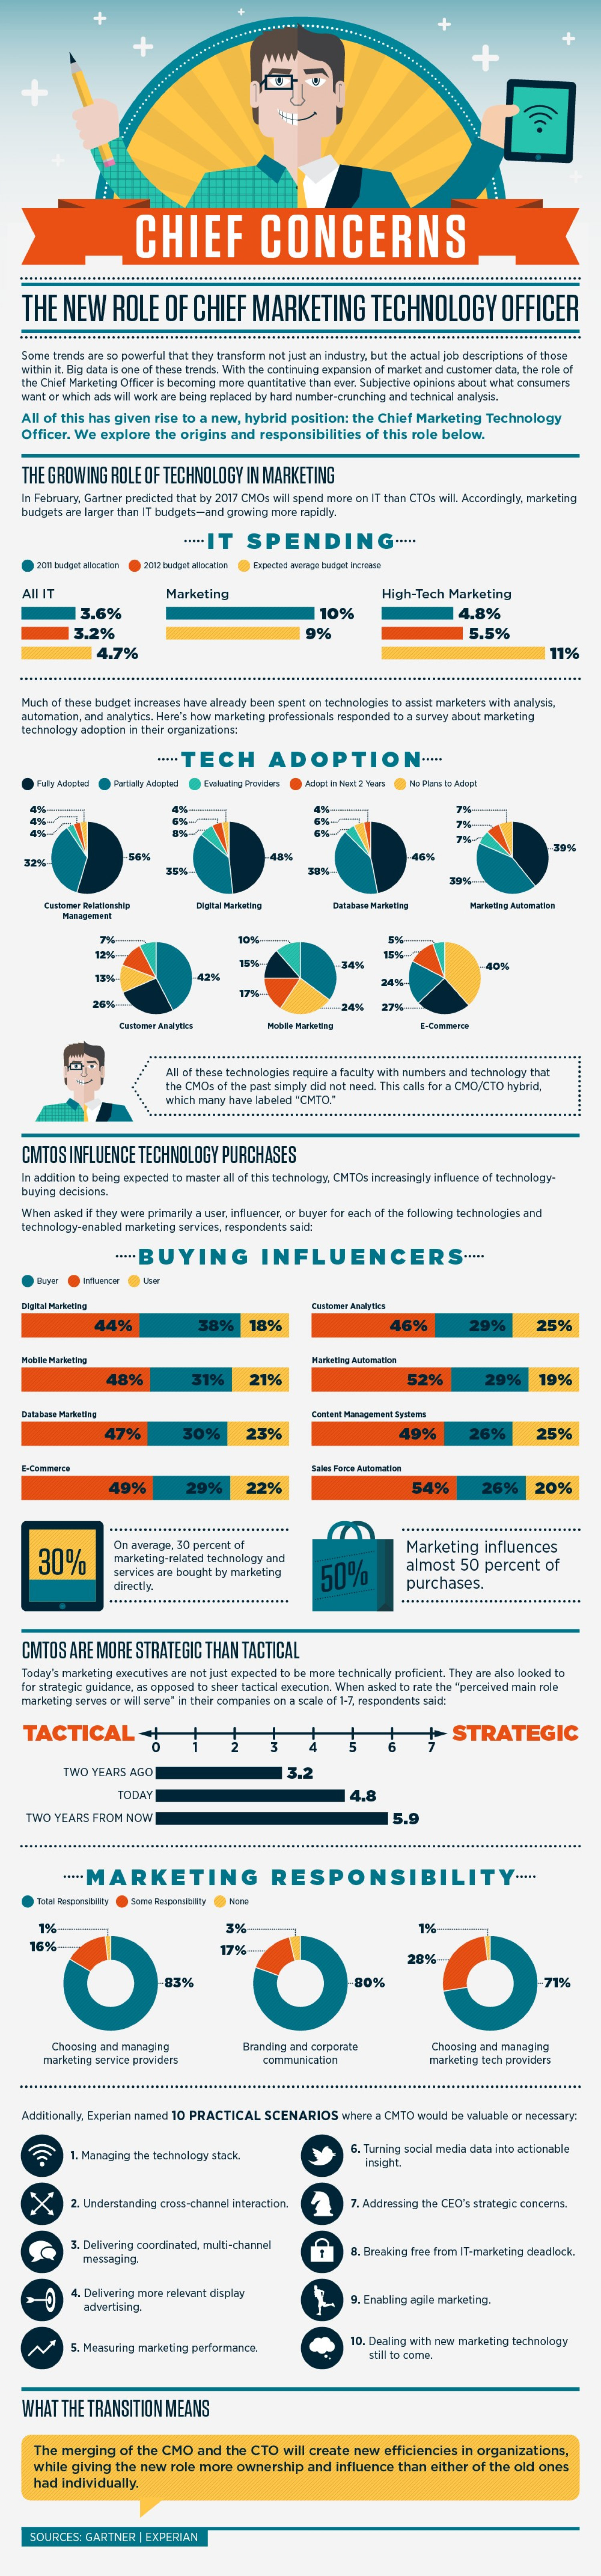 The New Role of Chief Marketing Technology Officer Infographic